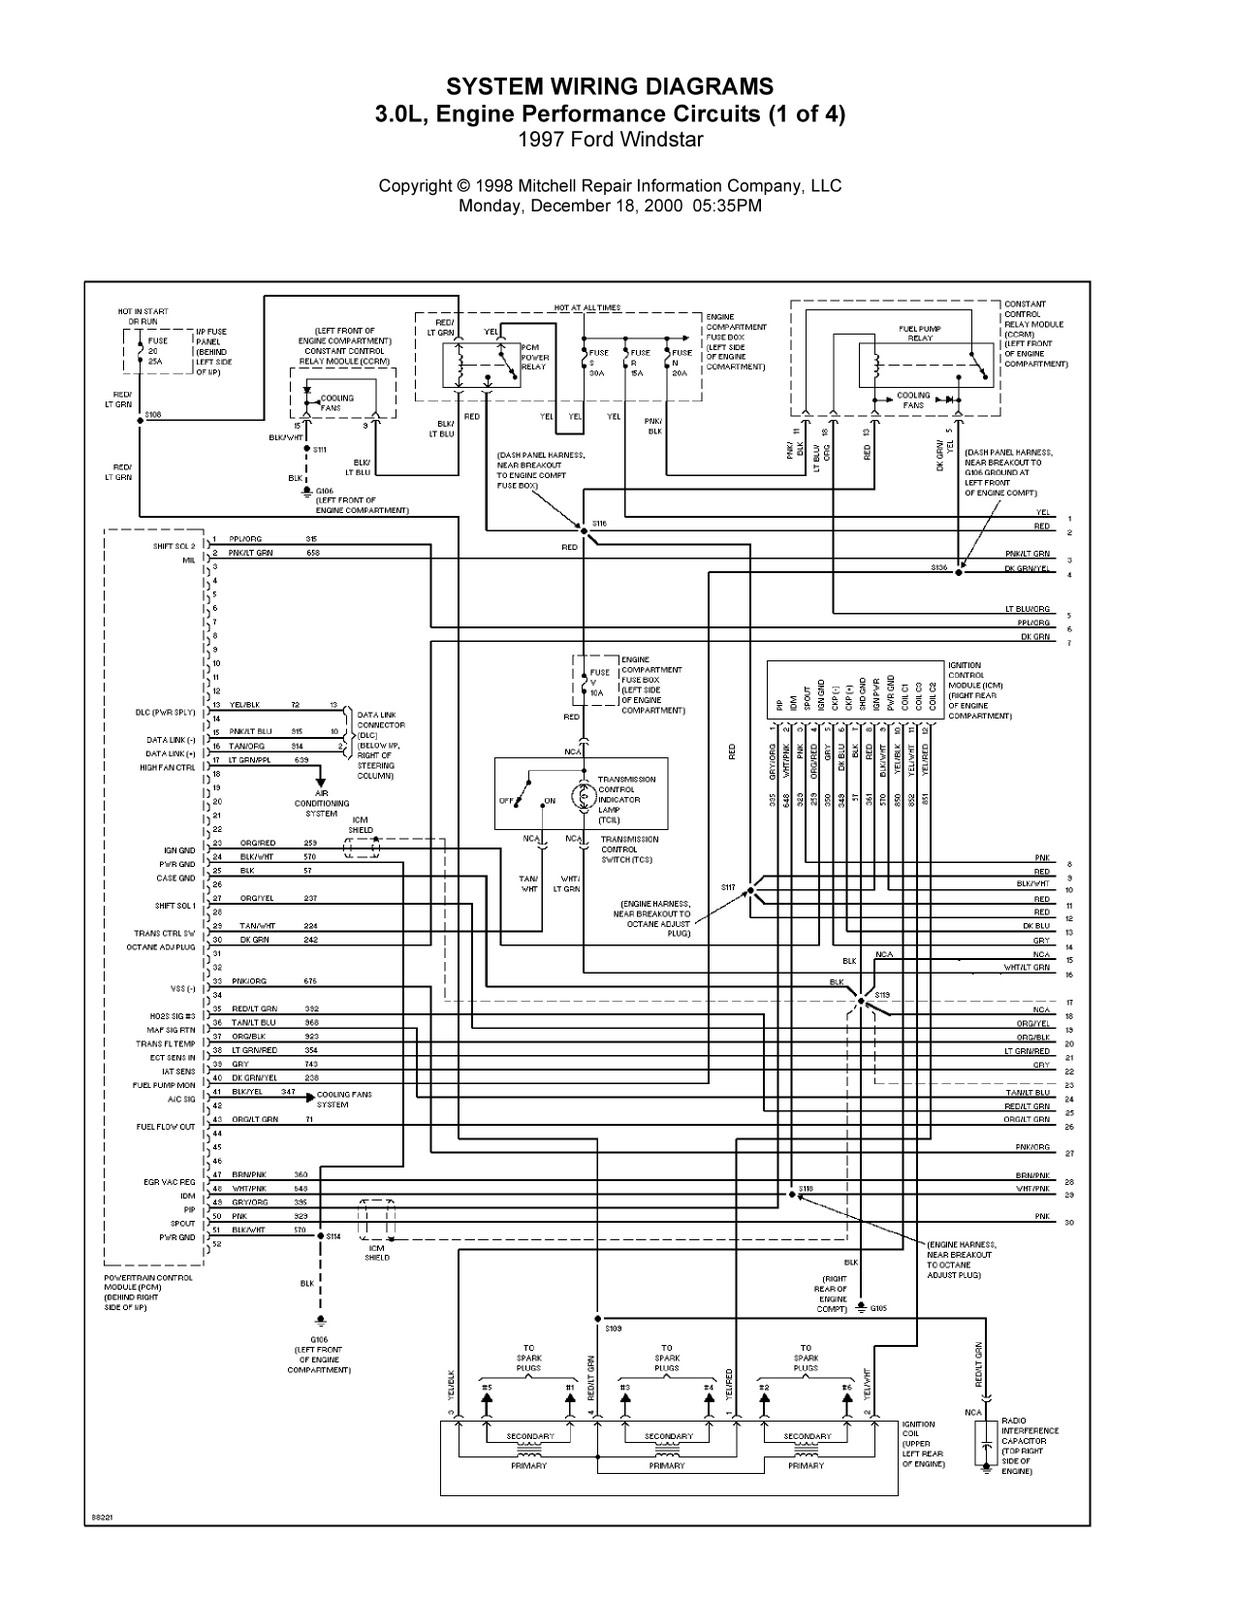 Ford Windstar Electrical Diagram Books Of Wiring 2002 Fuse 1997 Complete System Diagrams 2003